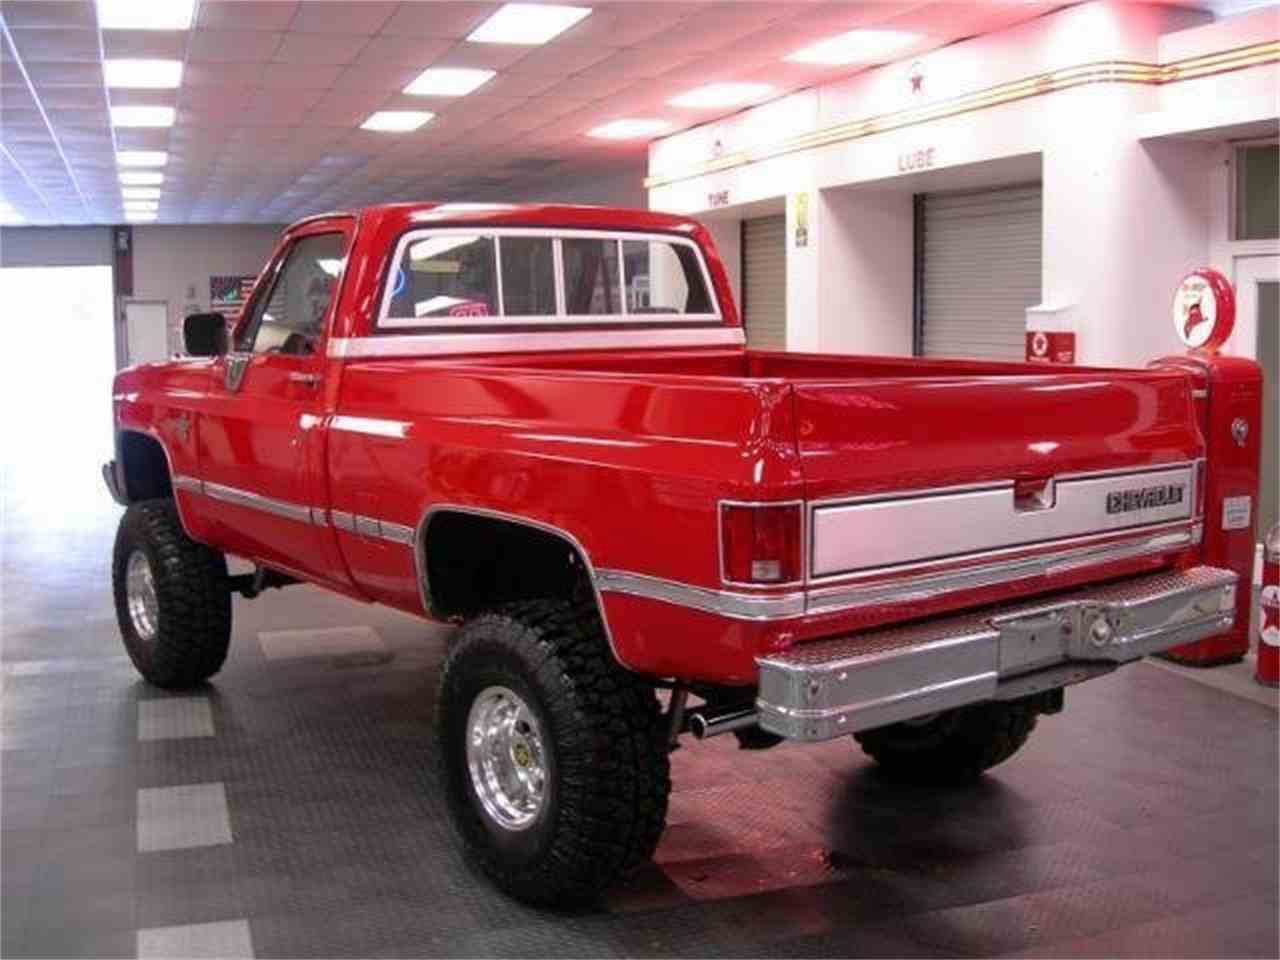 1983 silverado chevrolet 1500 vehicles dothan alabama inspection buyer seller vehicle resources similar contact